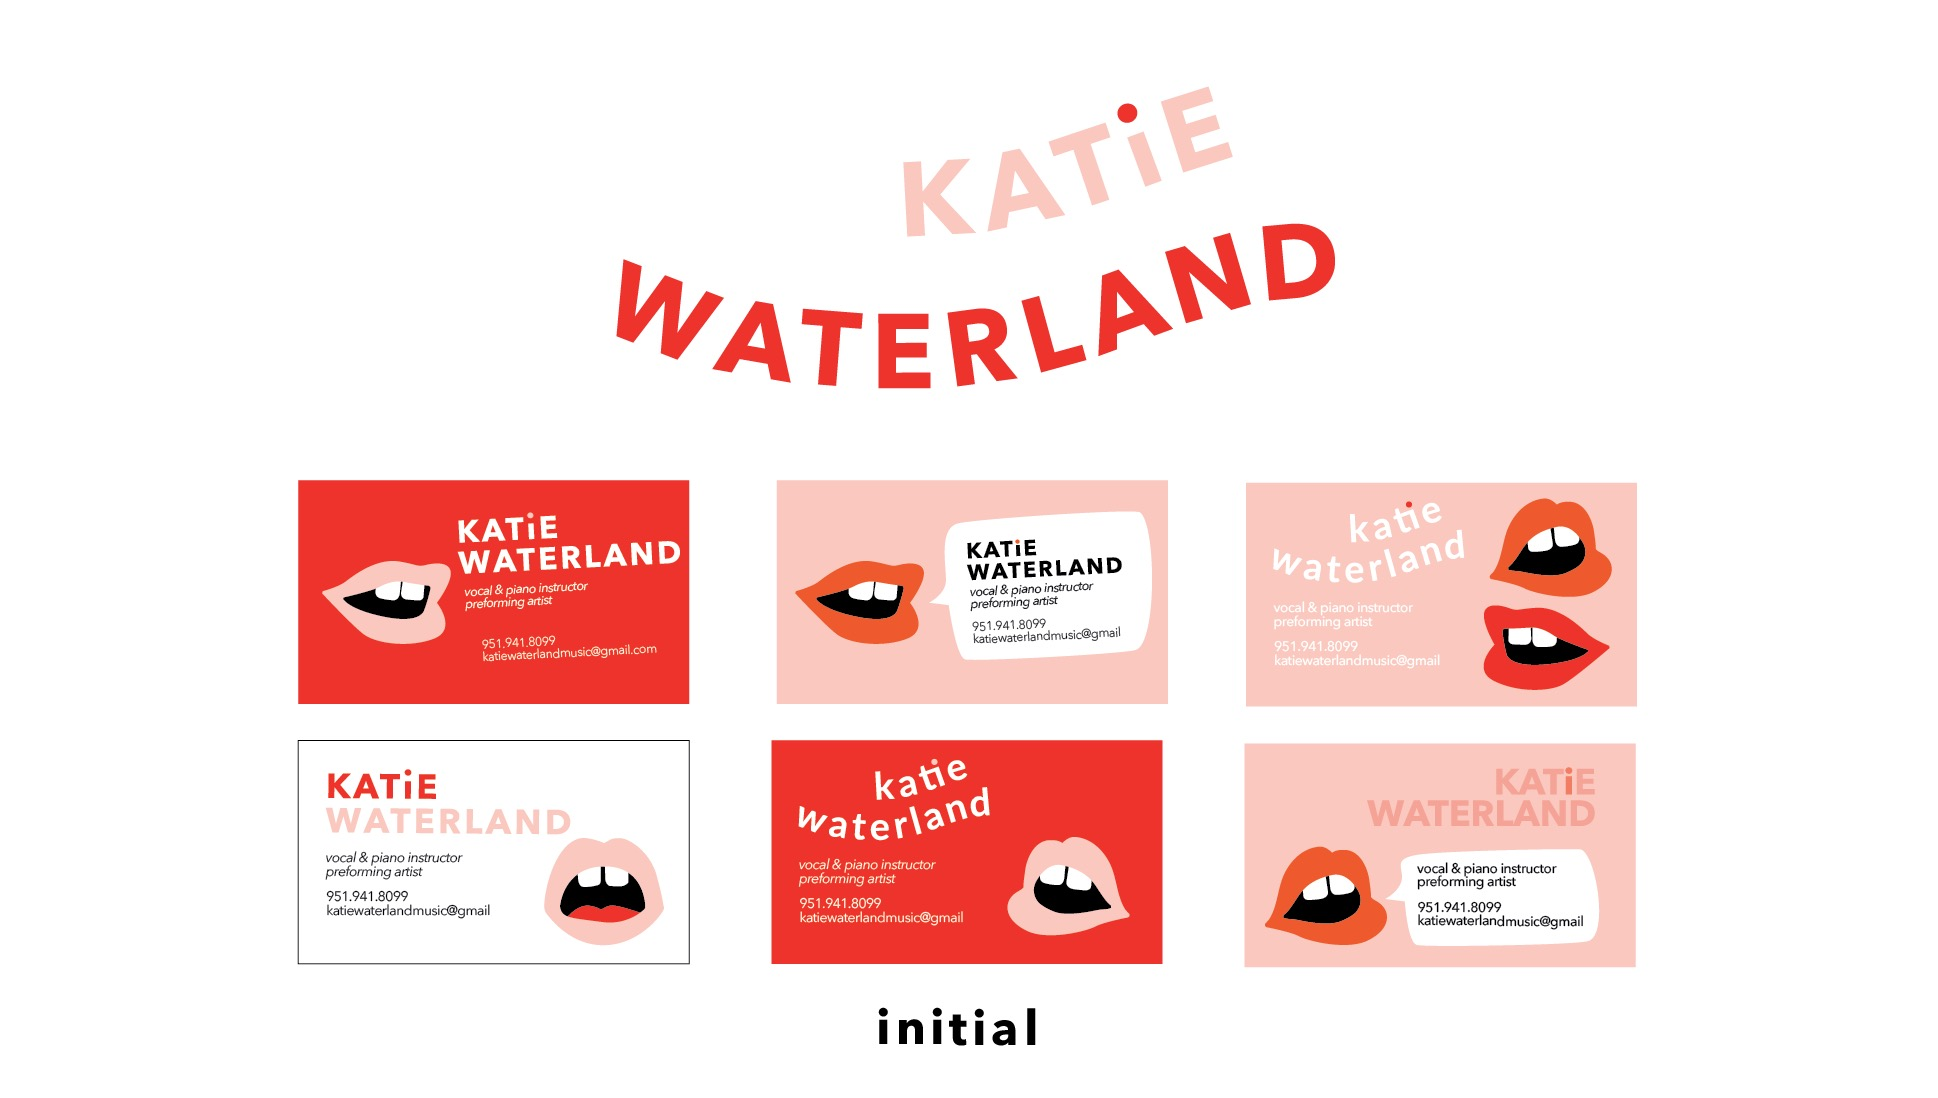 Katie is a good friend of mine-- outgoing, fun, and ridiculously talented. We wanted her brand to be bold, professional, and not a typical music teacher direction.